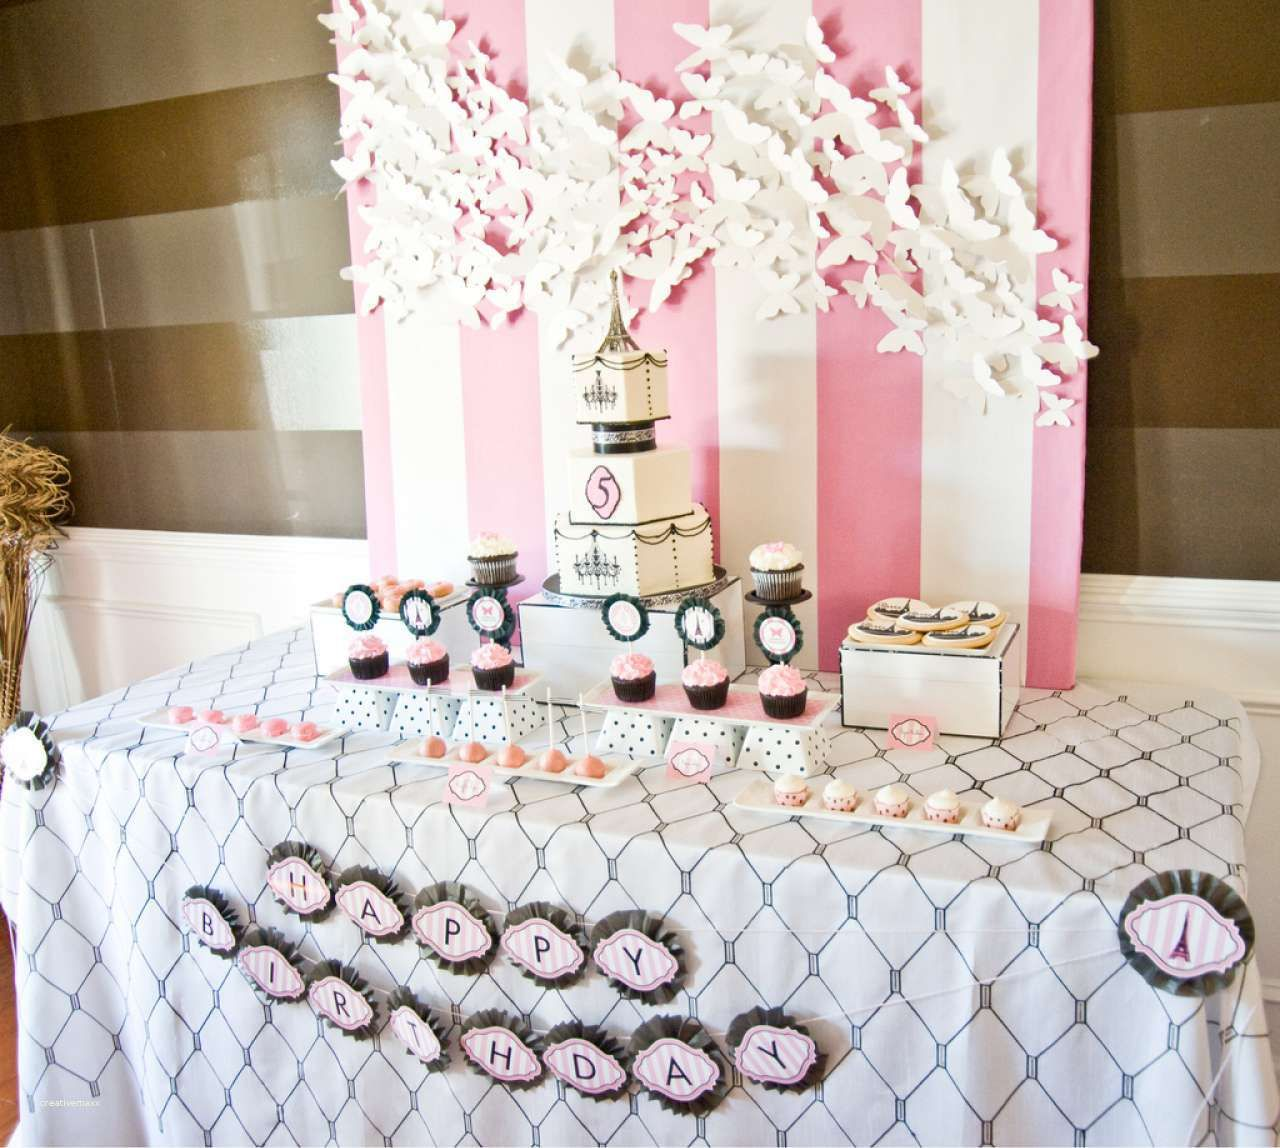 Elegant Birthday Party Ideas for 14 Year Olds | Elegant birthday ...